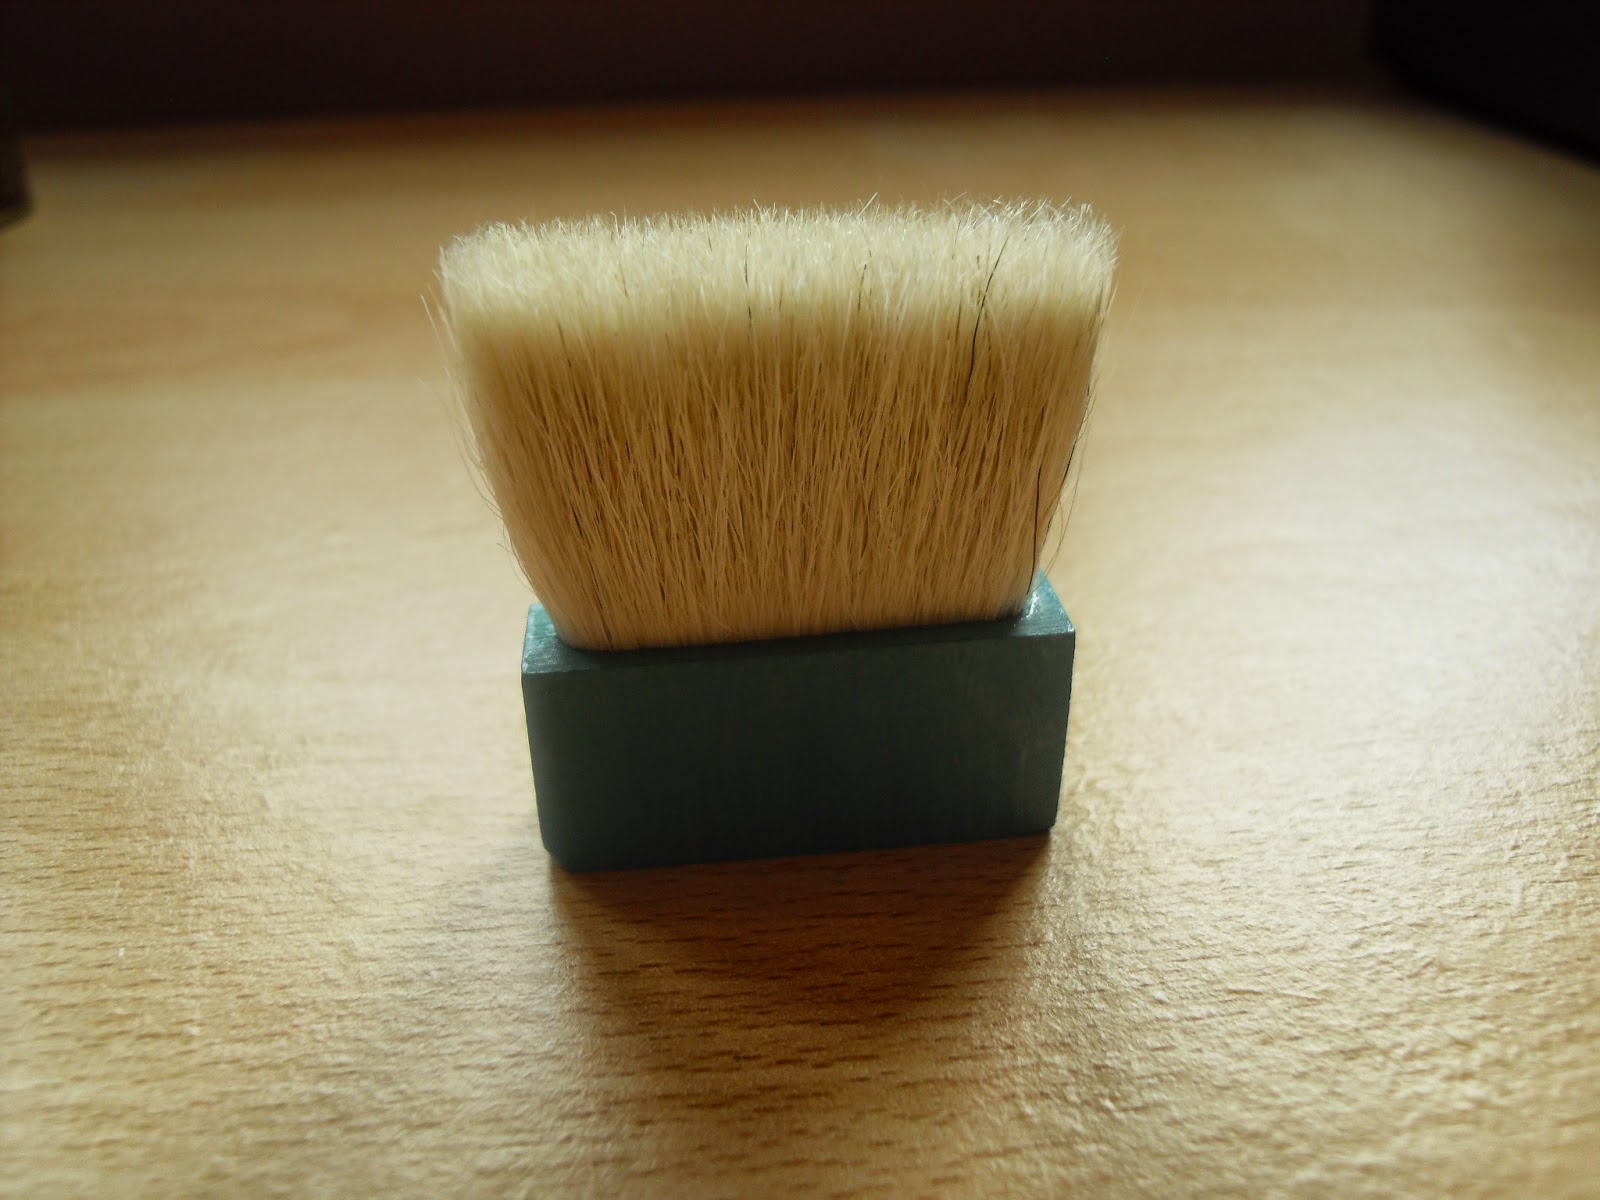 Benefit-hoola-powder-brush